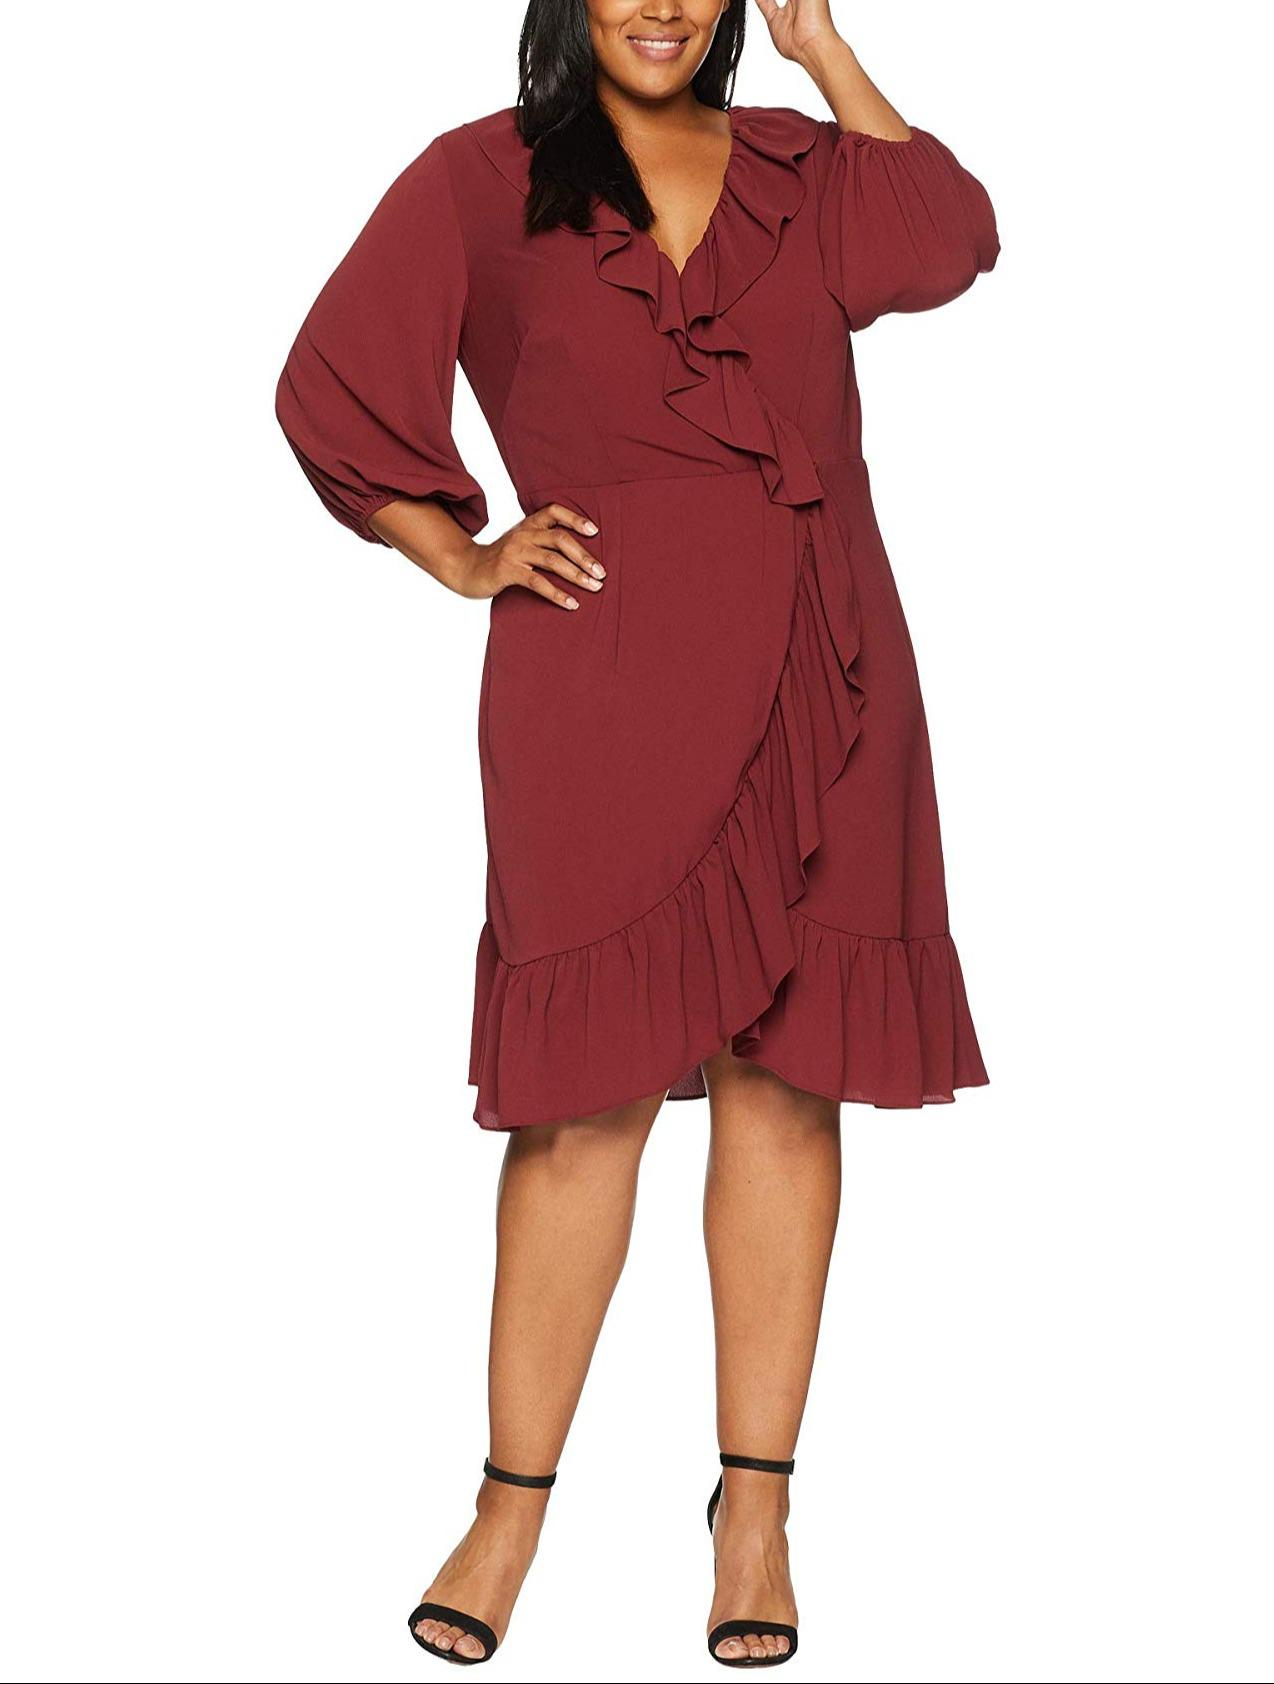 Adrianna Papell high end plus-size women's clothing rental